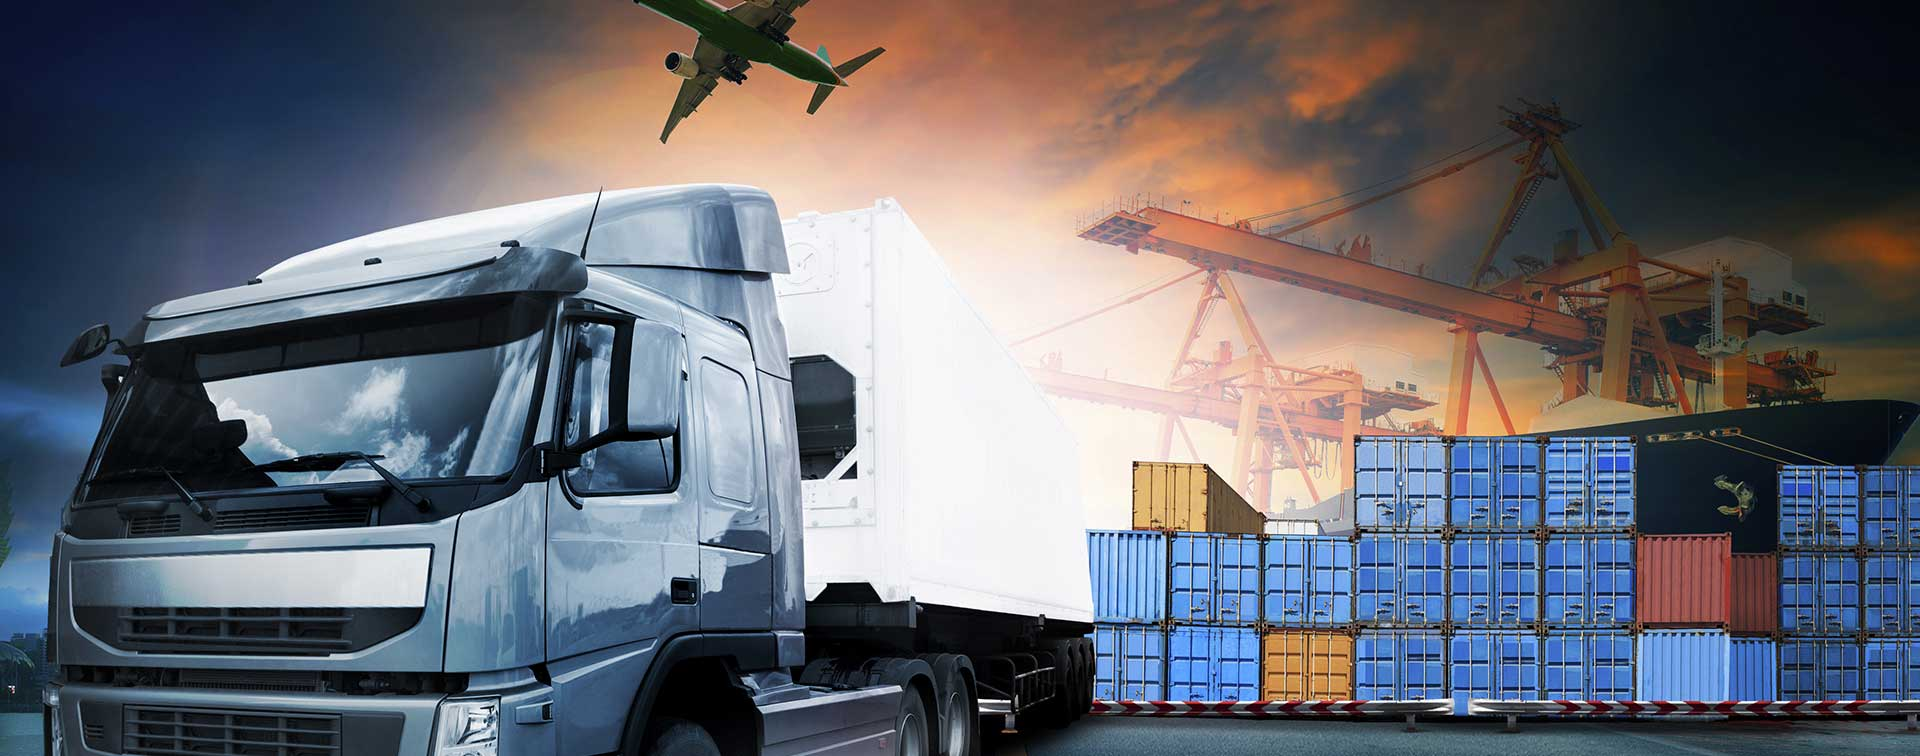 Logistic Business in Mumbai Looking for Investment